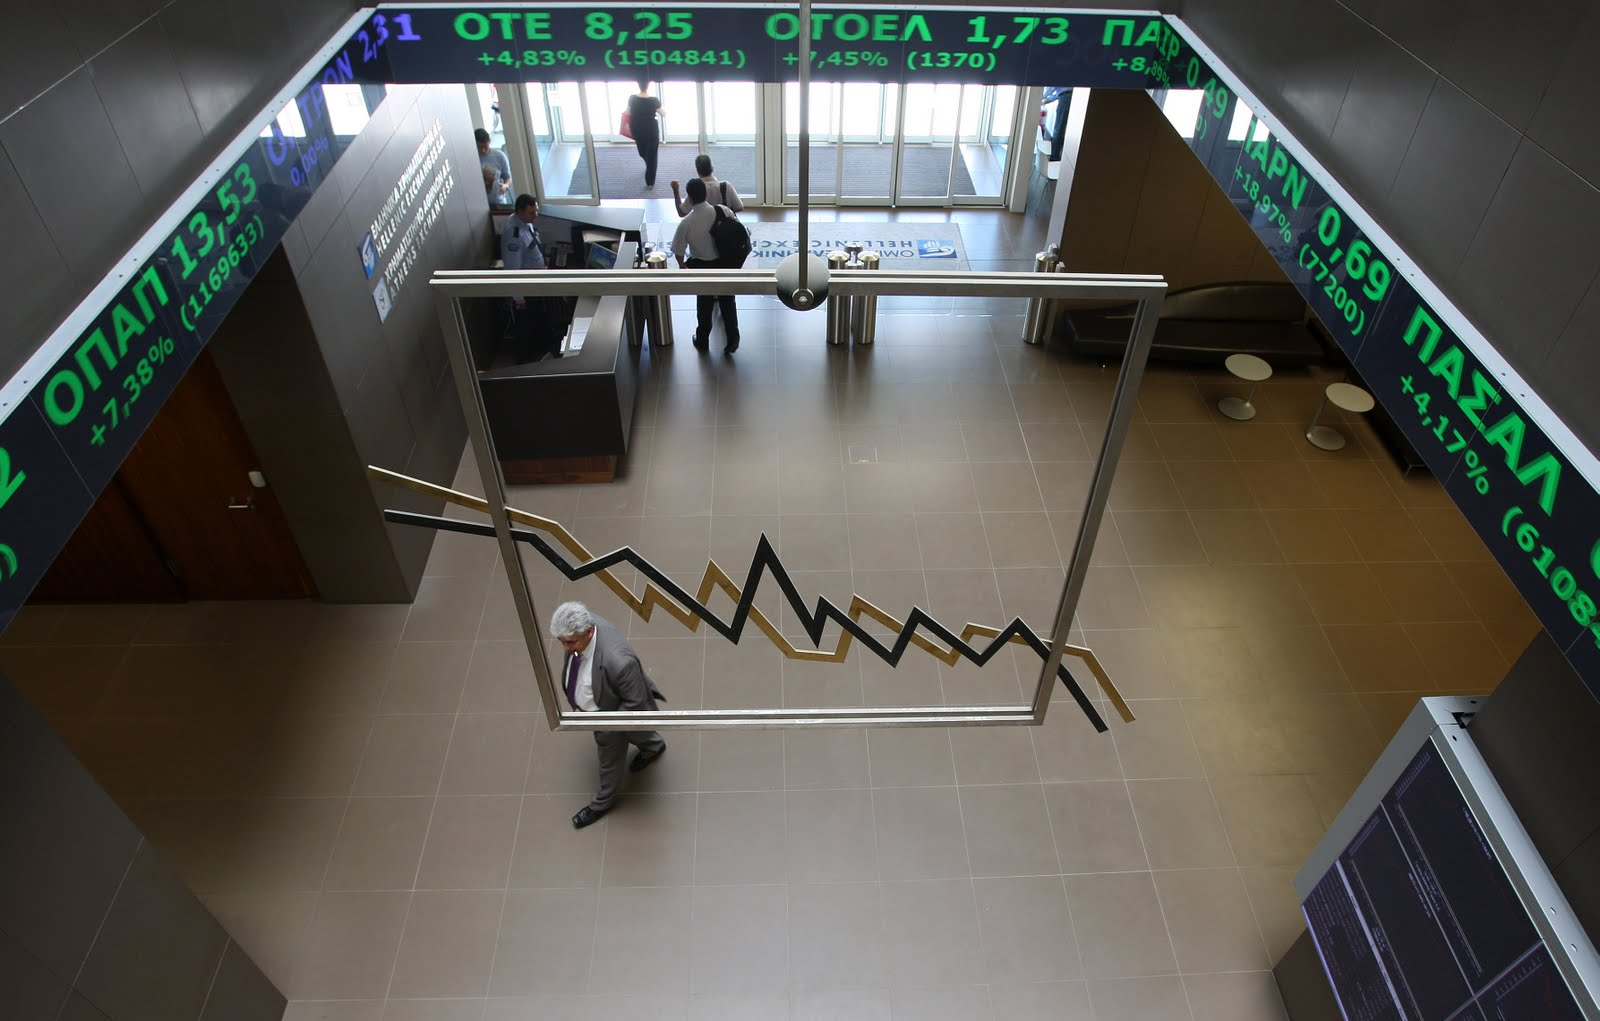 Athens Stock Exchange continues to struggle